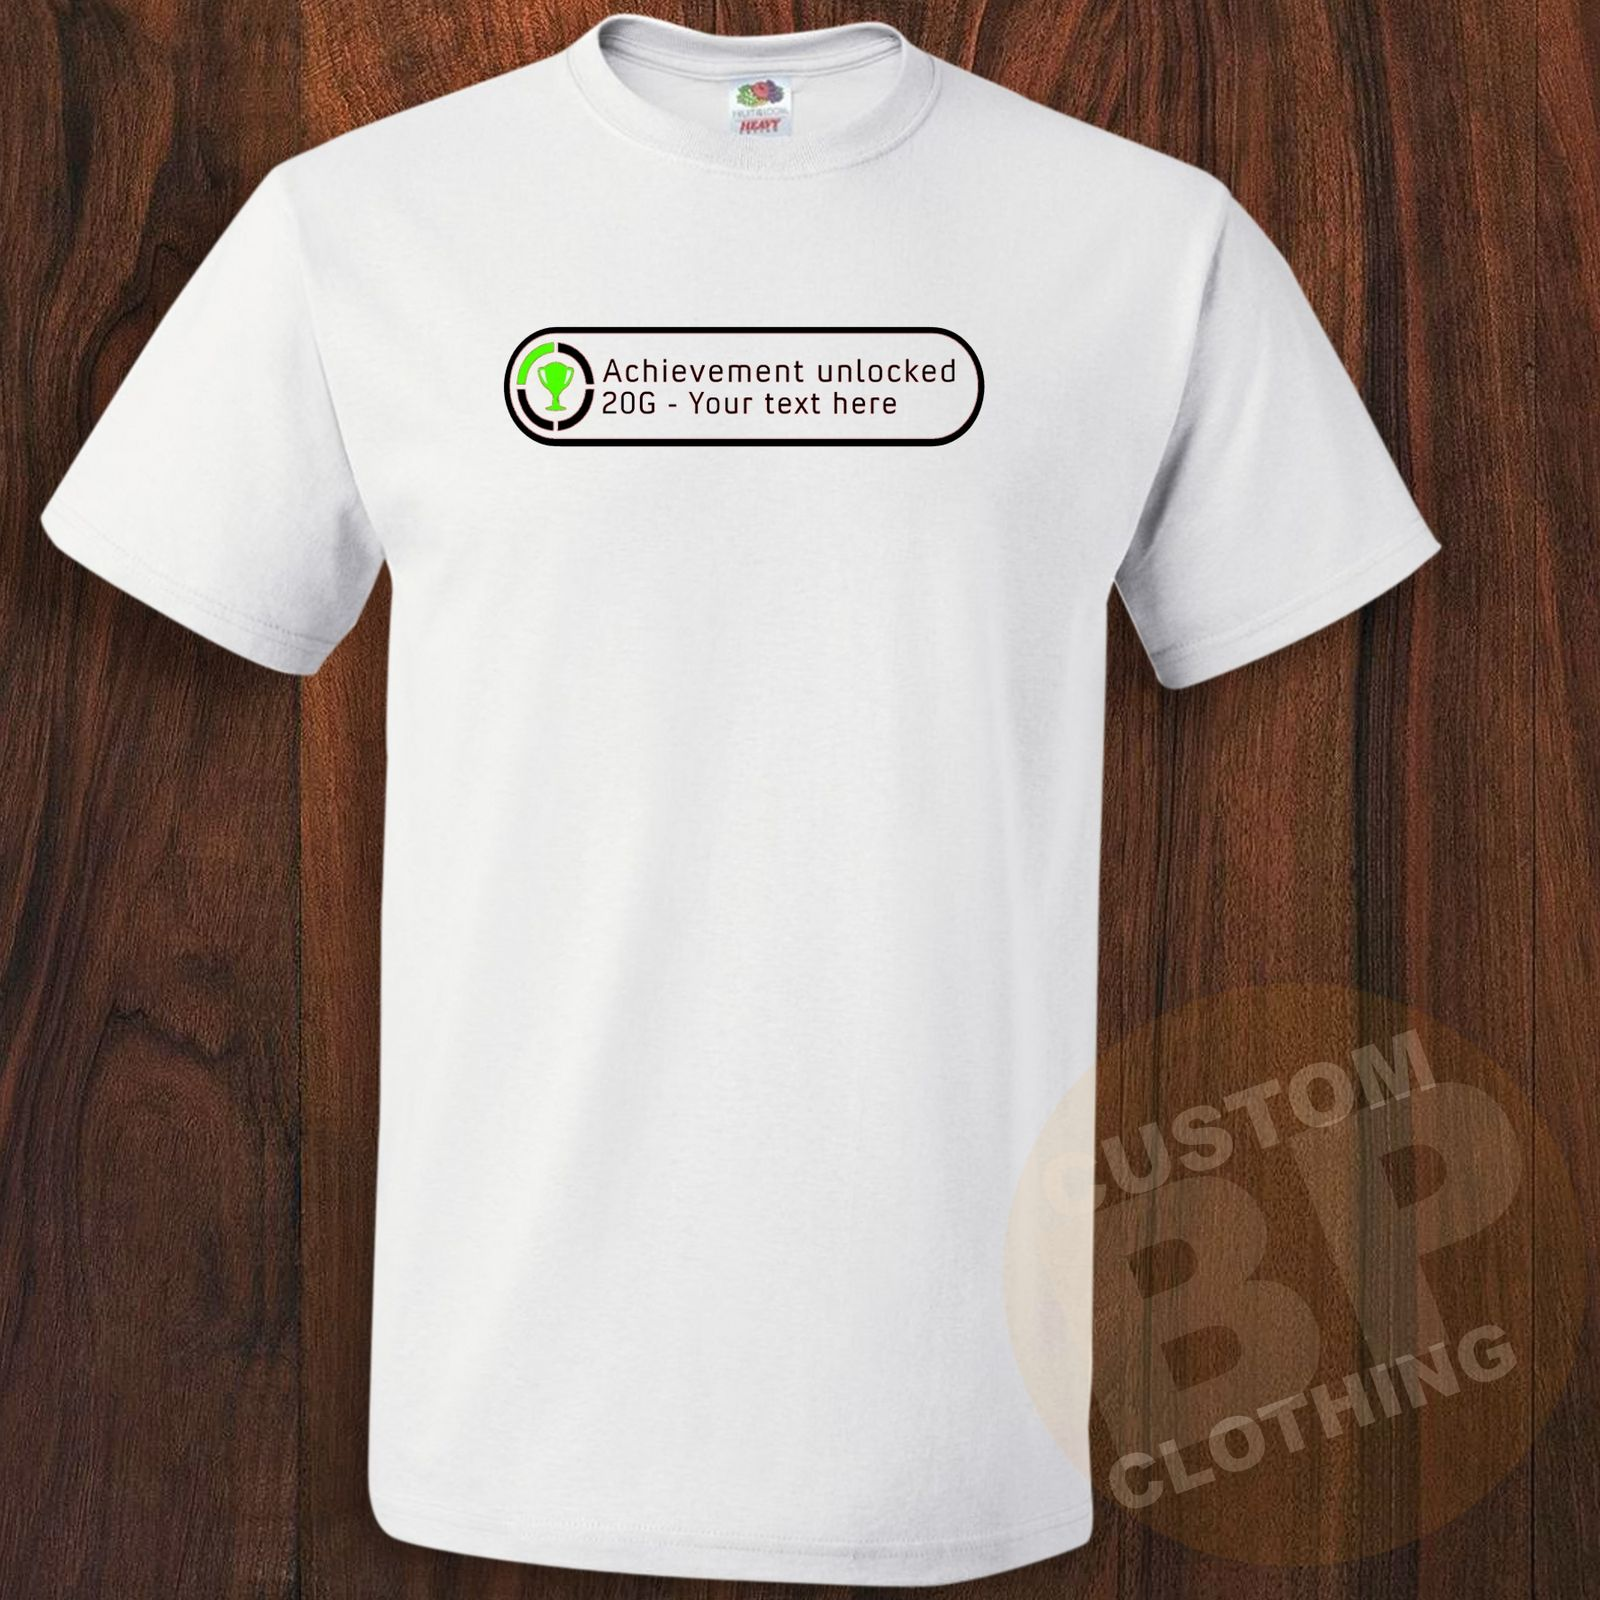 Xbox Personalized Achievement Unlocked Gamer Gaming Funny T-Shirt 8 Colors S-3XL New T Shirts Tops